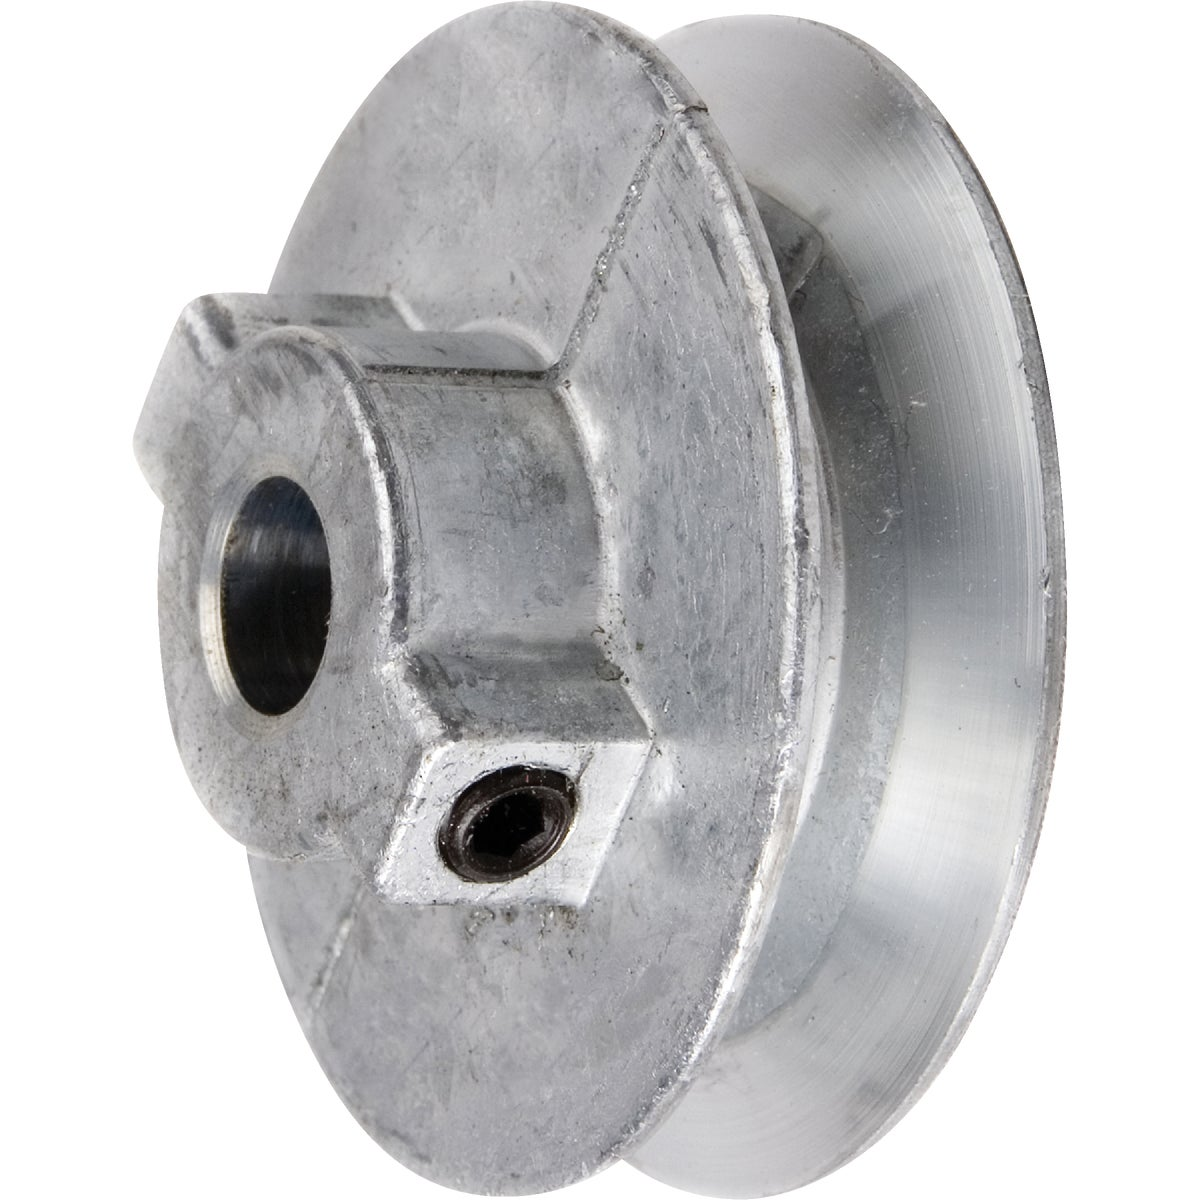 6X5/8 PULLEY - 600A6 by Chicago Die Casting